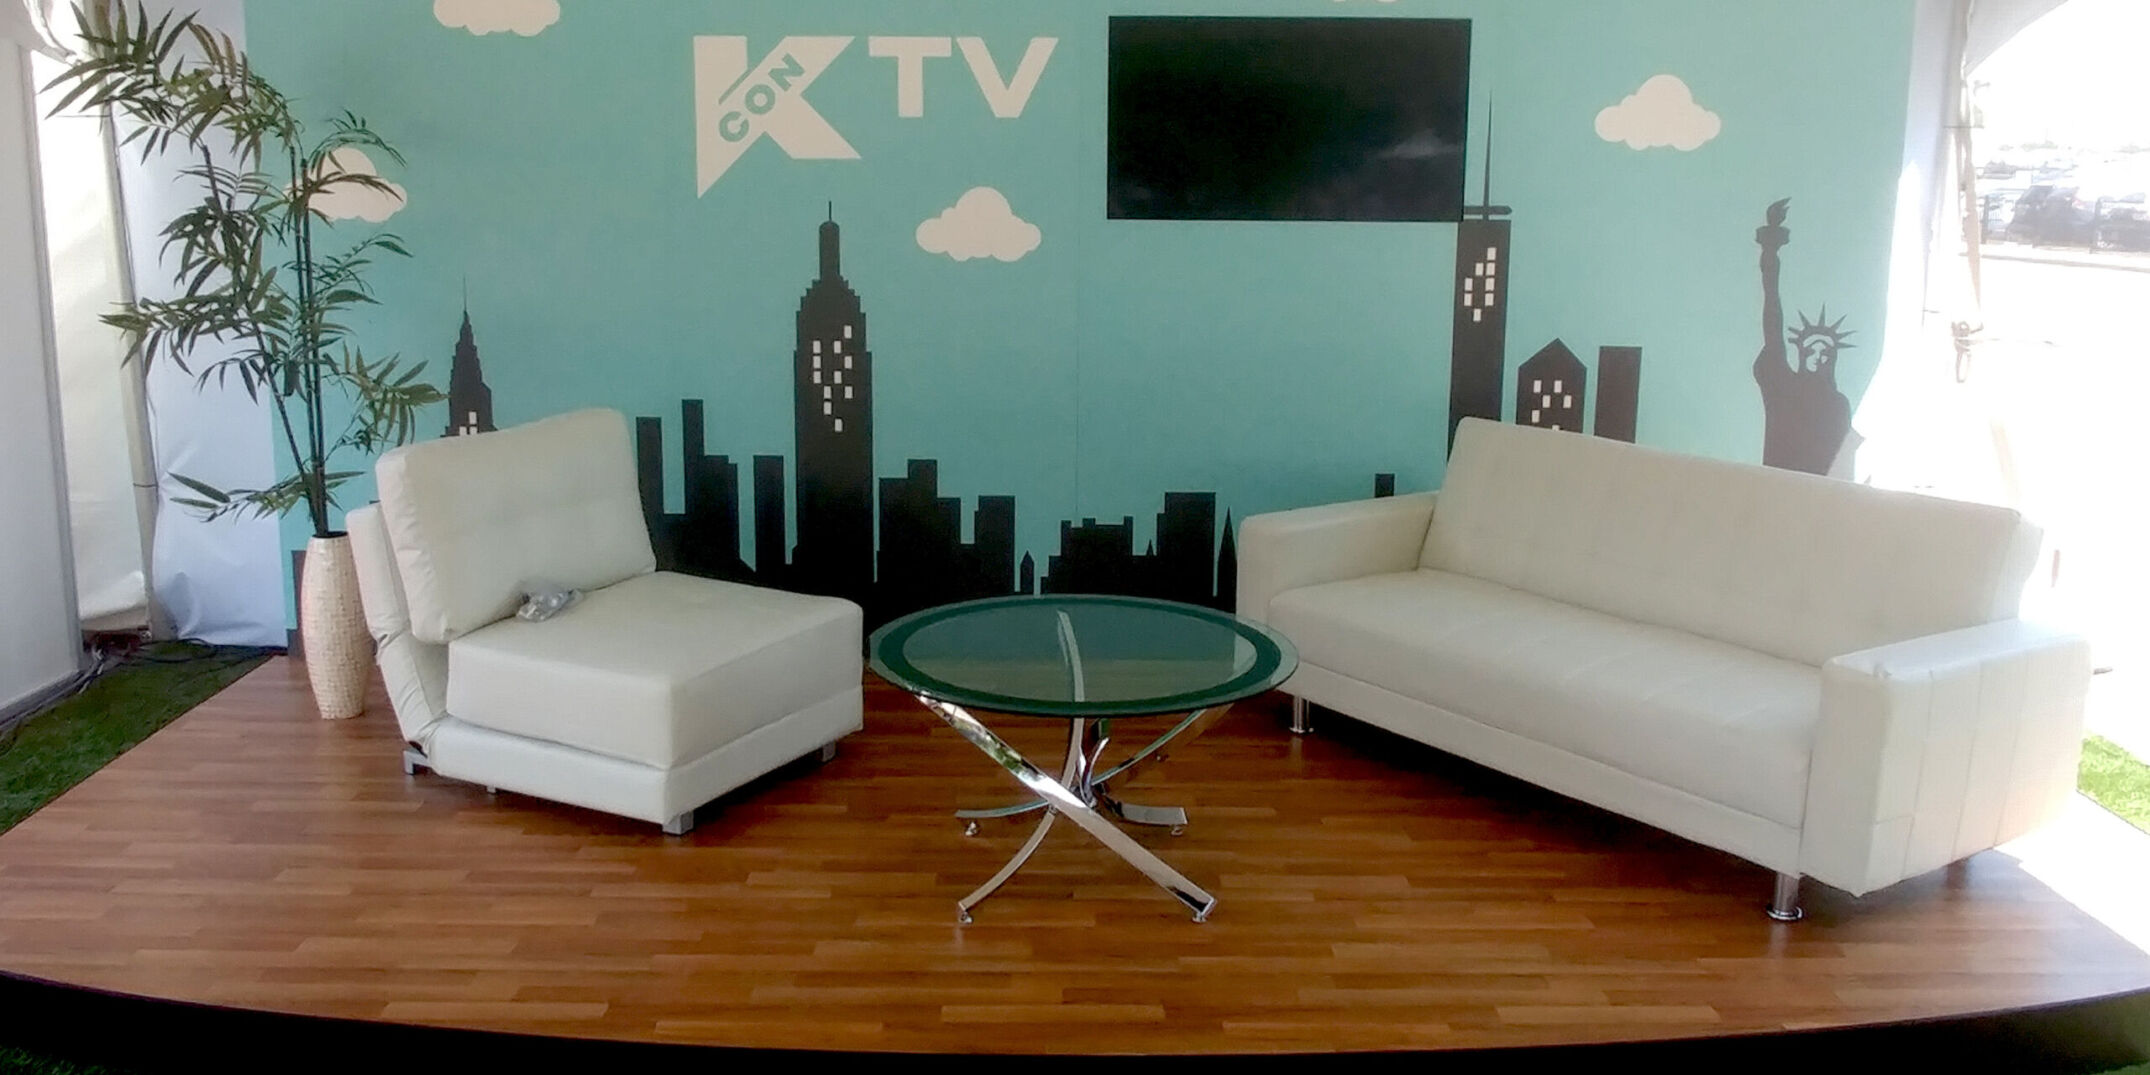 TV set stage for Kcon with graphic wall, wood flooring, monitor and modern furniture for TV interviews